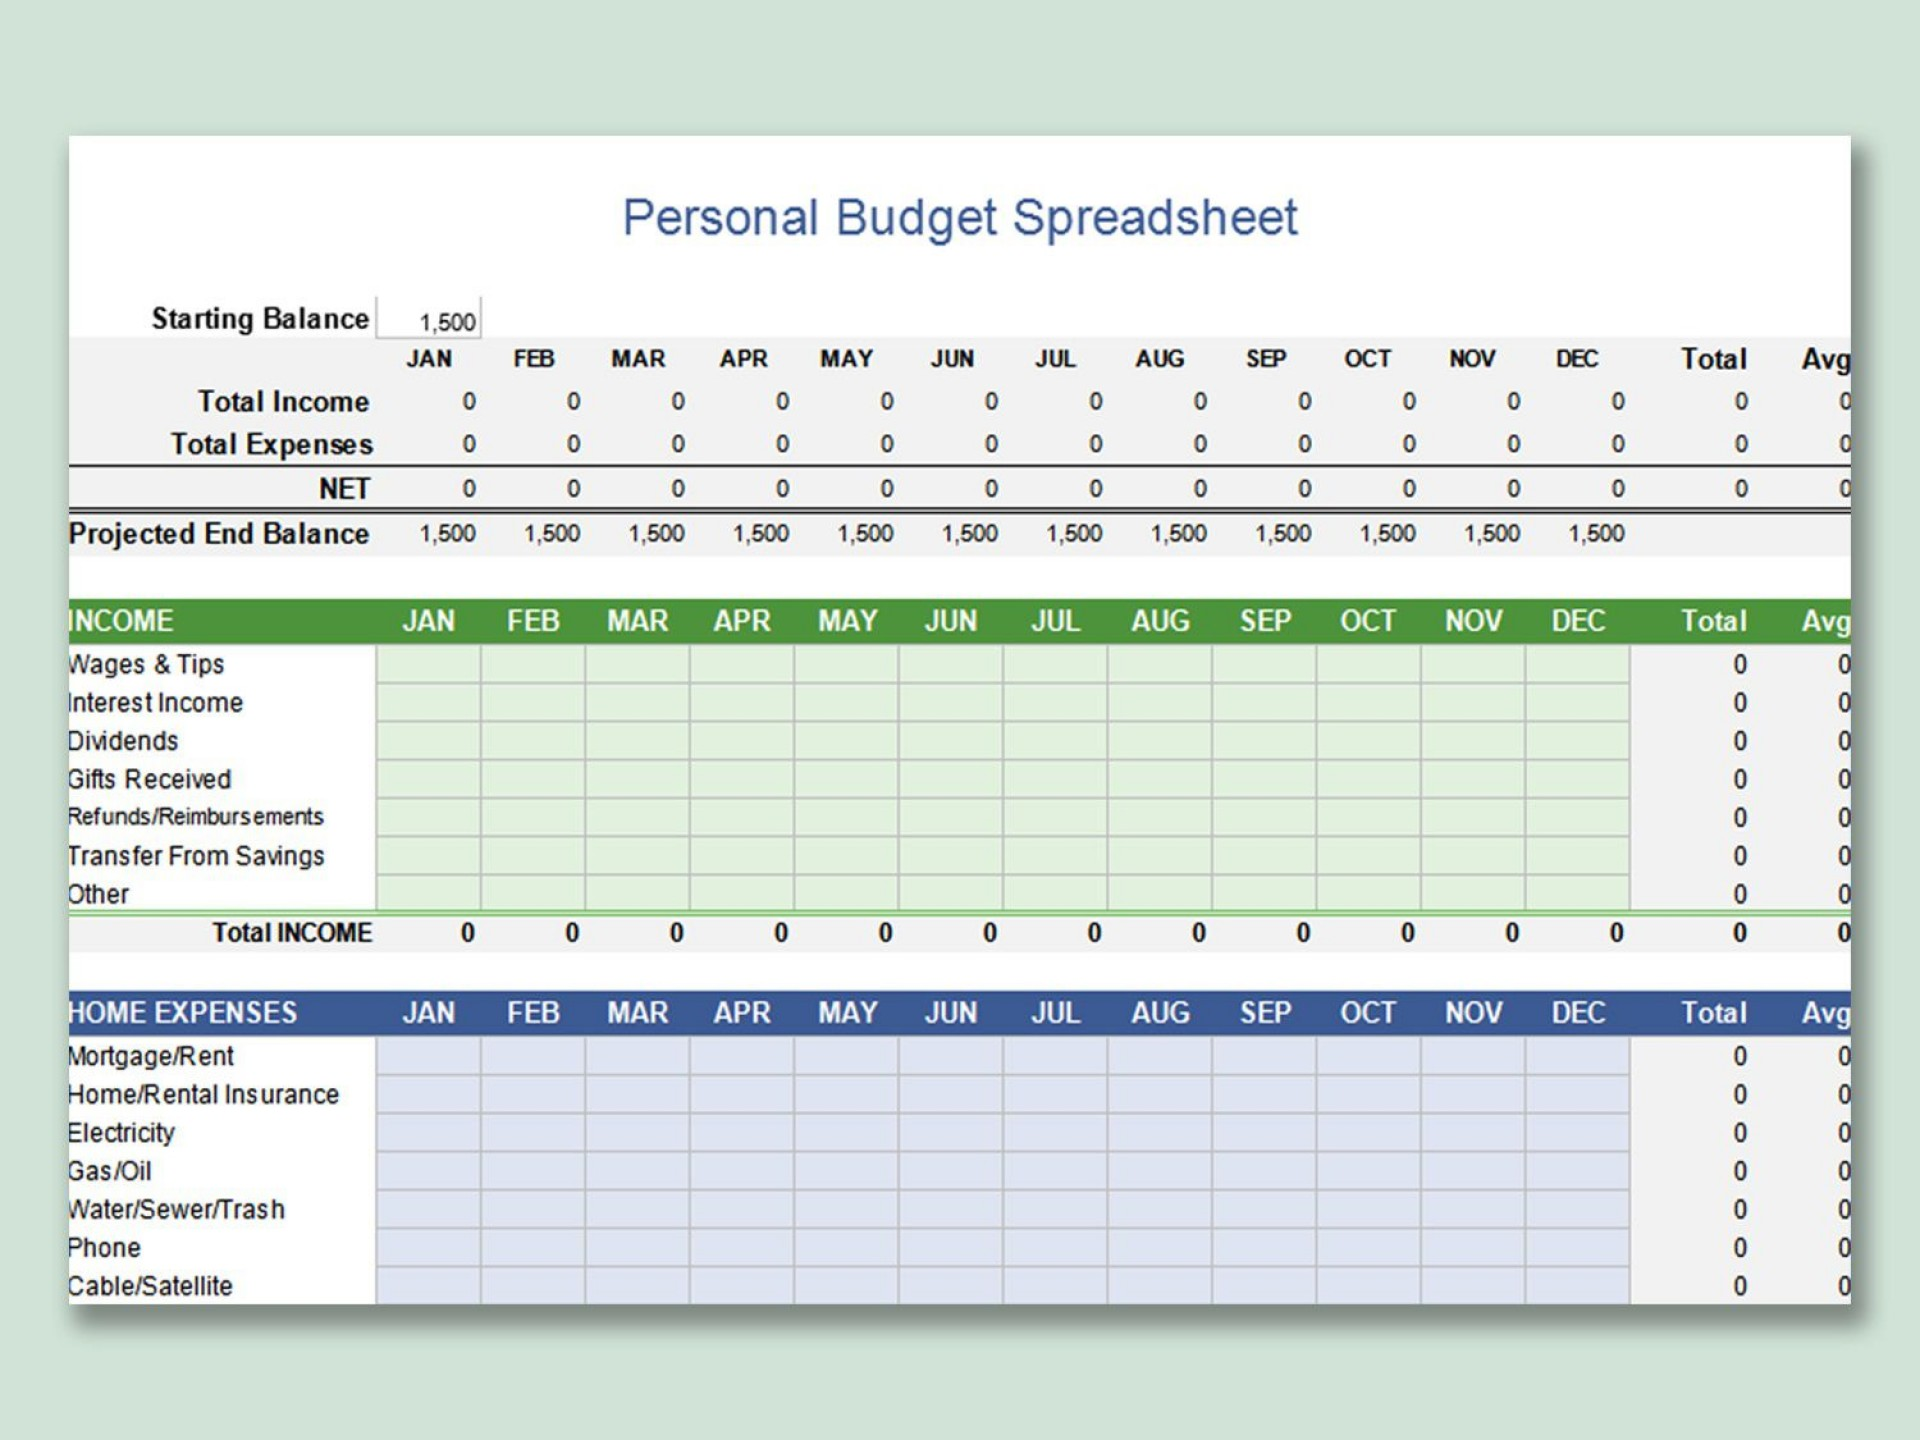 000 Awful Personal Budget Spreadsheet Template For Mac Idea 1920